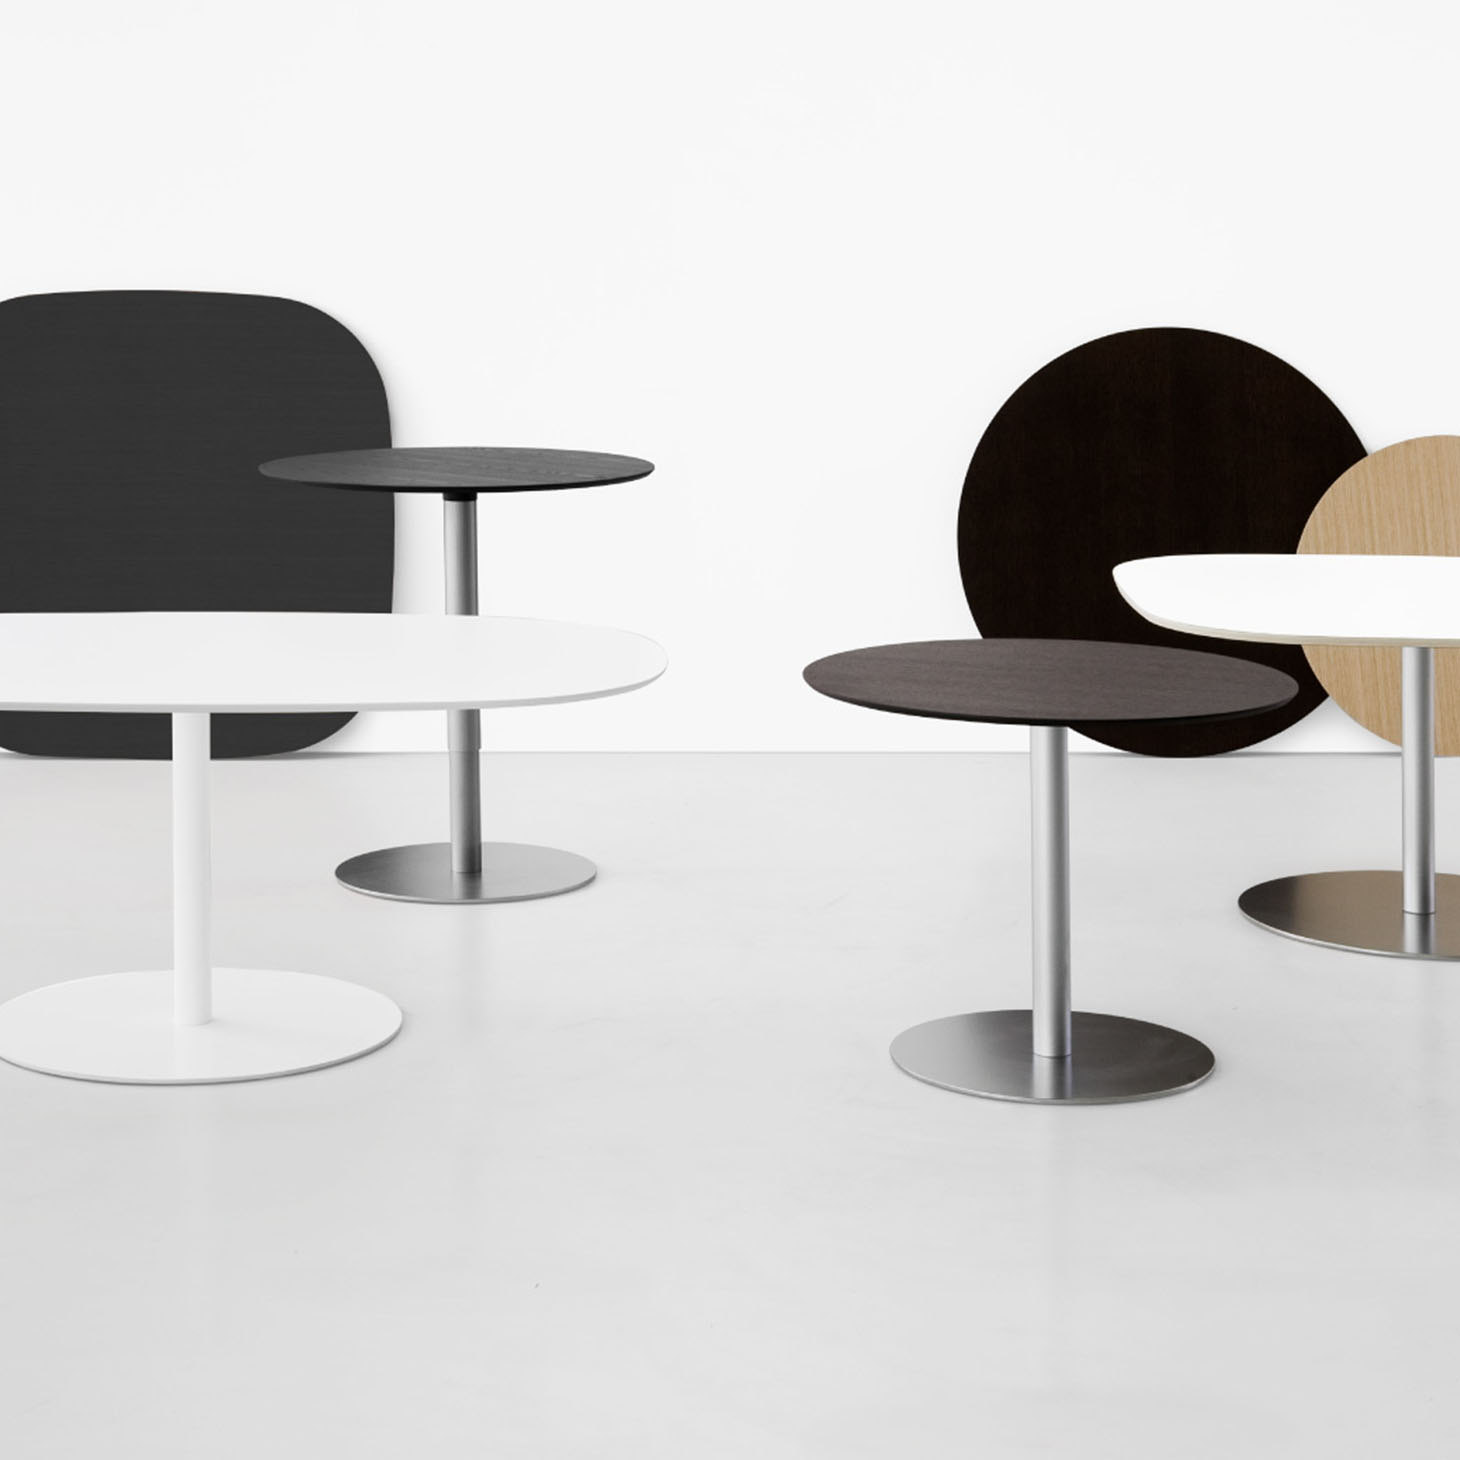 Rondo Family of Tables by Marcato for LaPalma